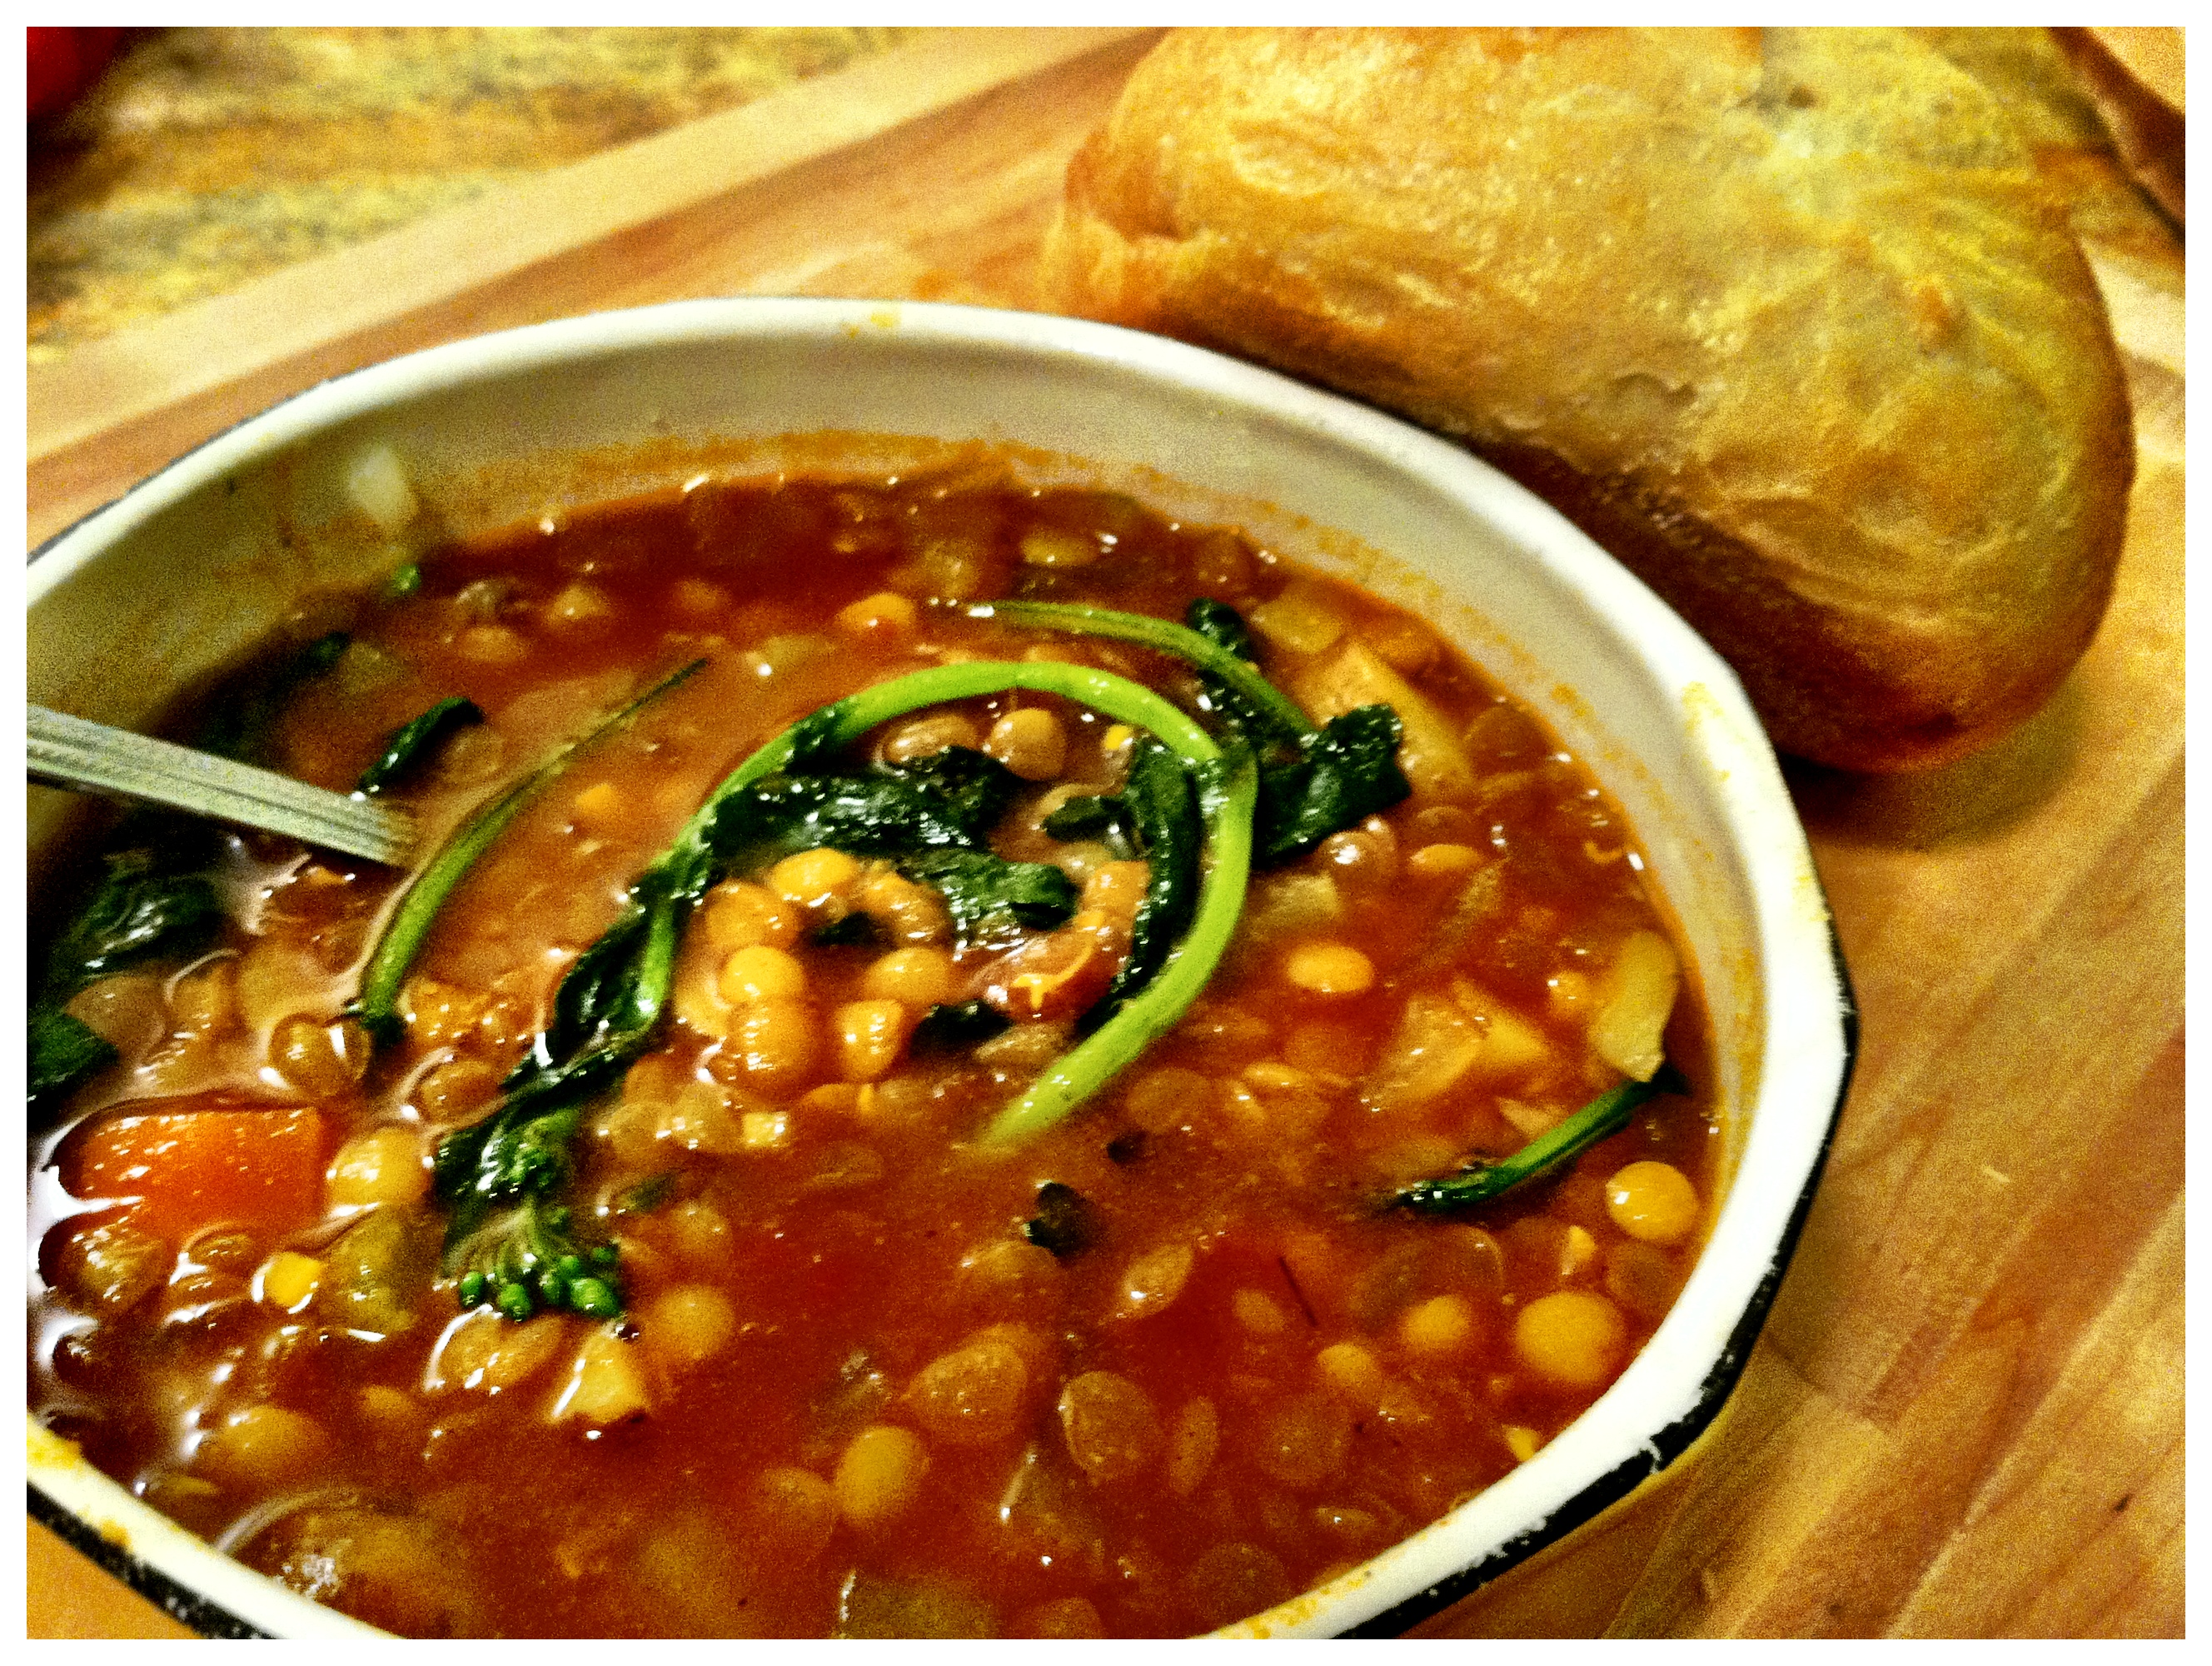 Broccoli Raab Curry Lentil Soup